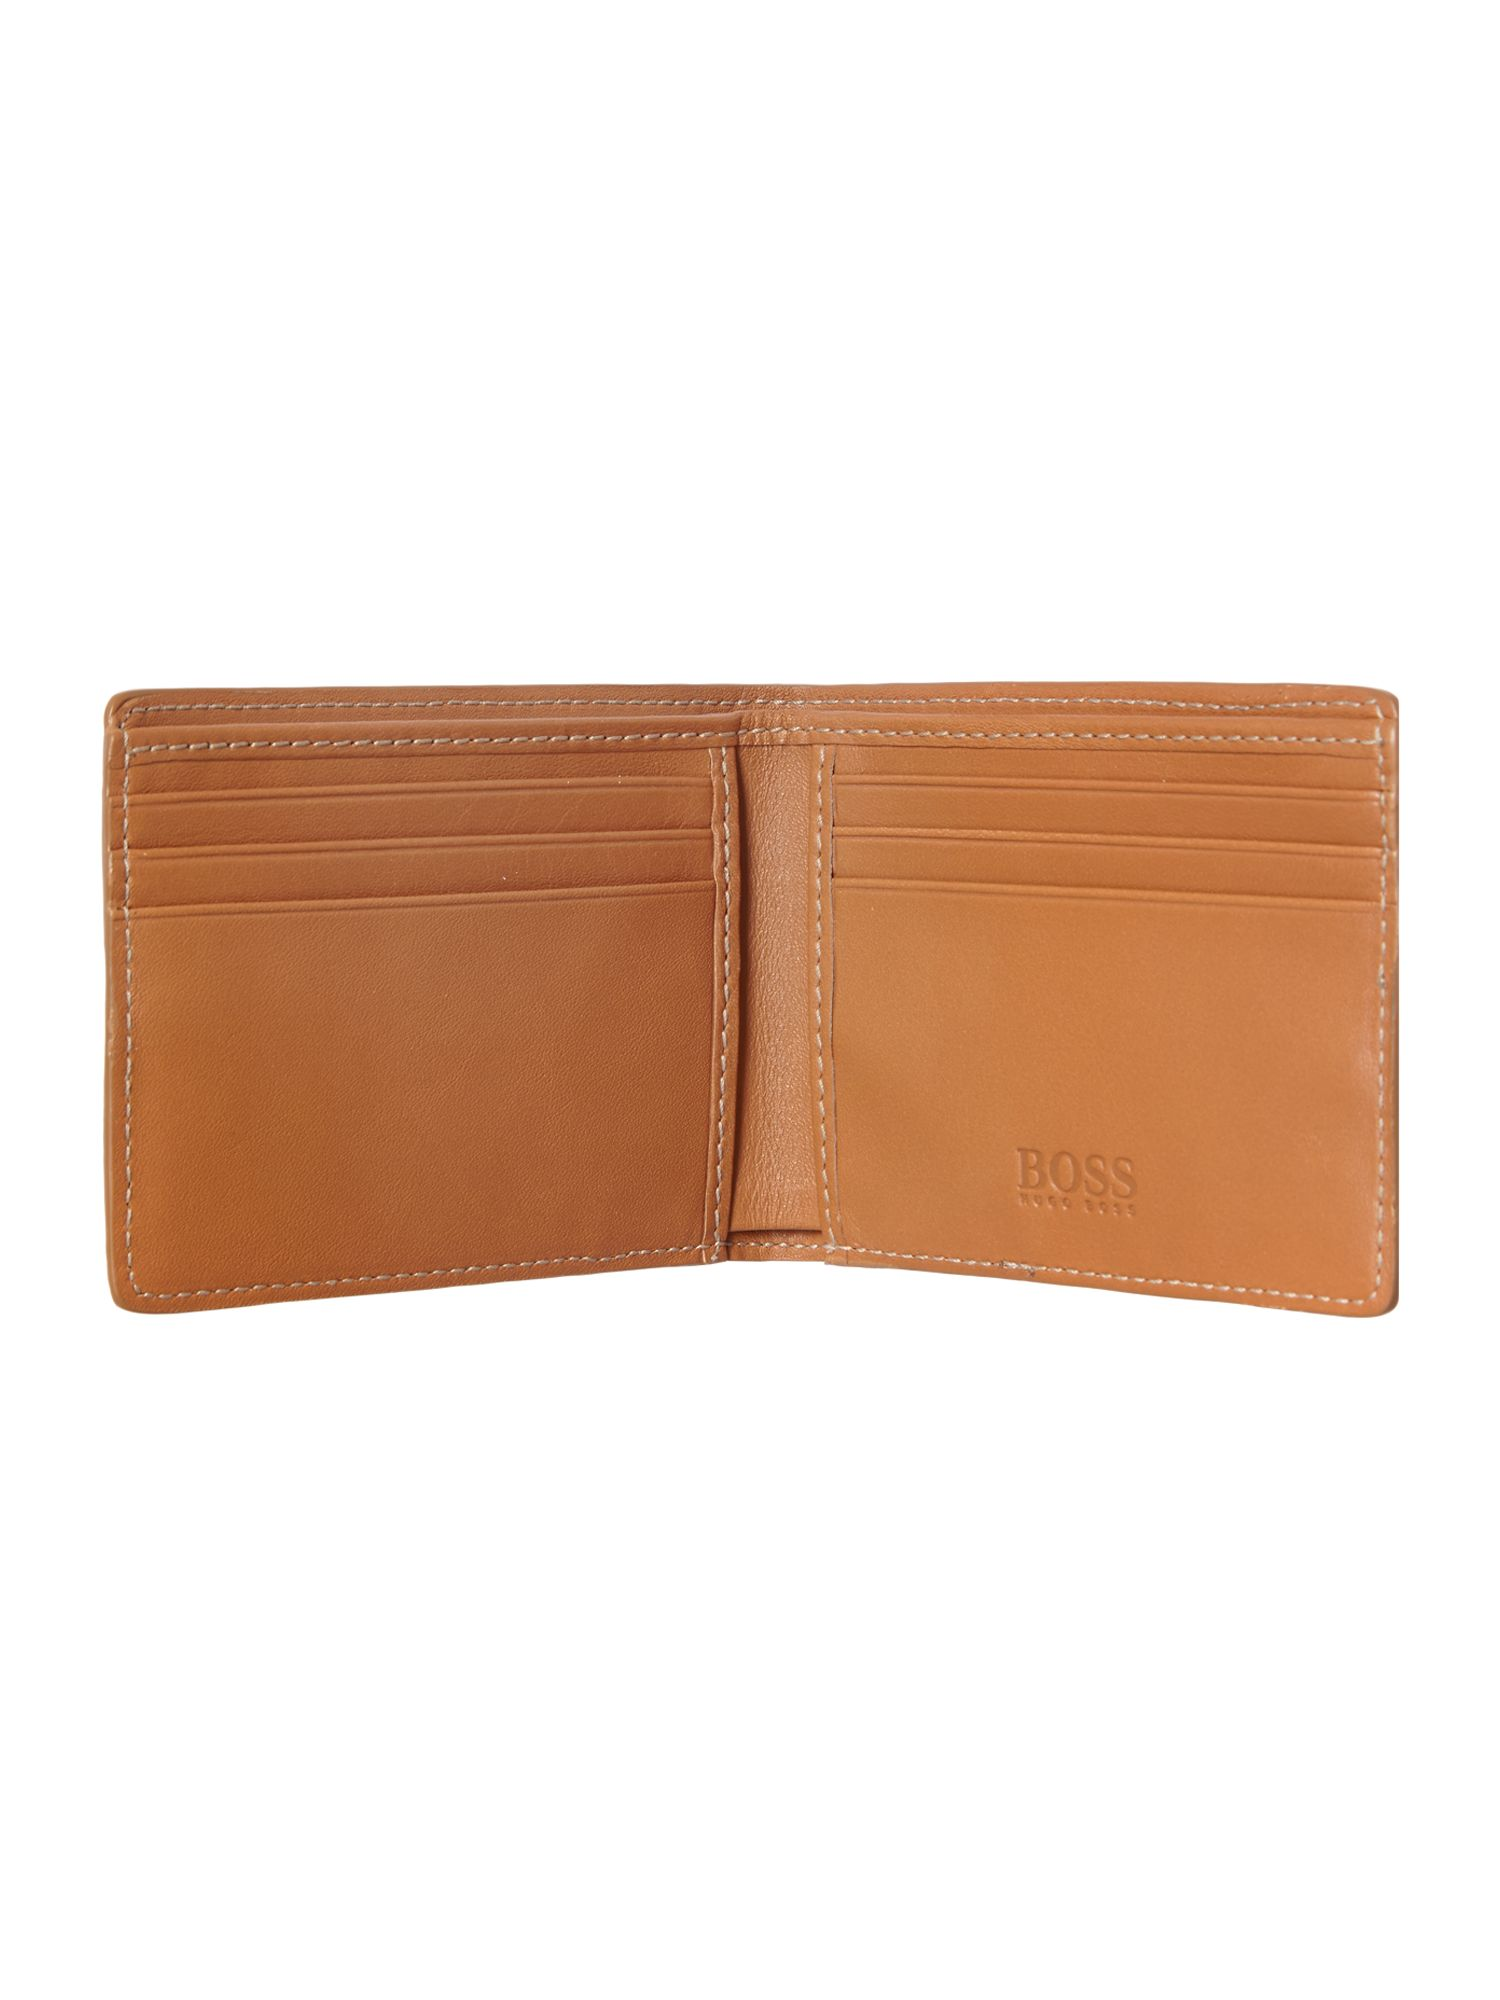 Ivoire leather billfold wallet